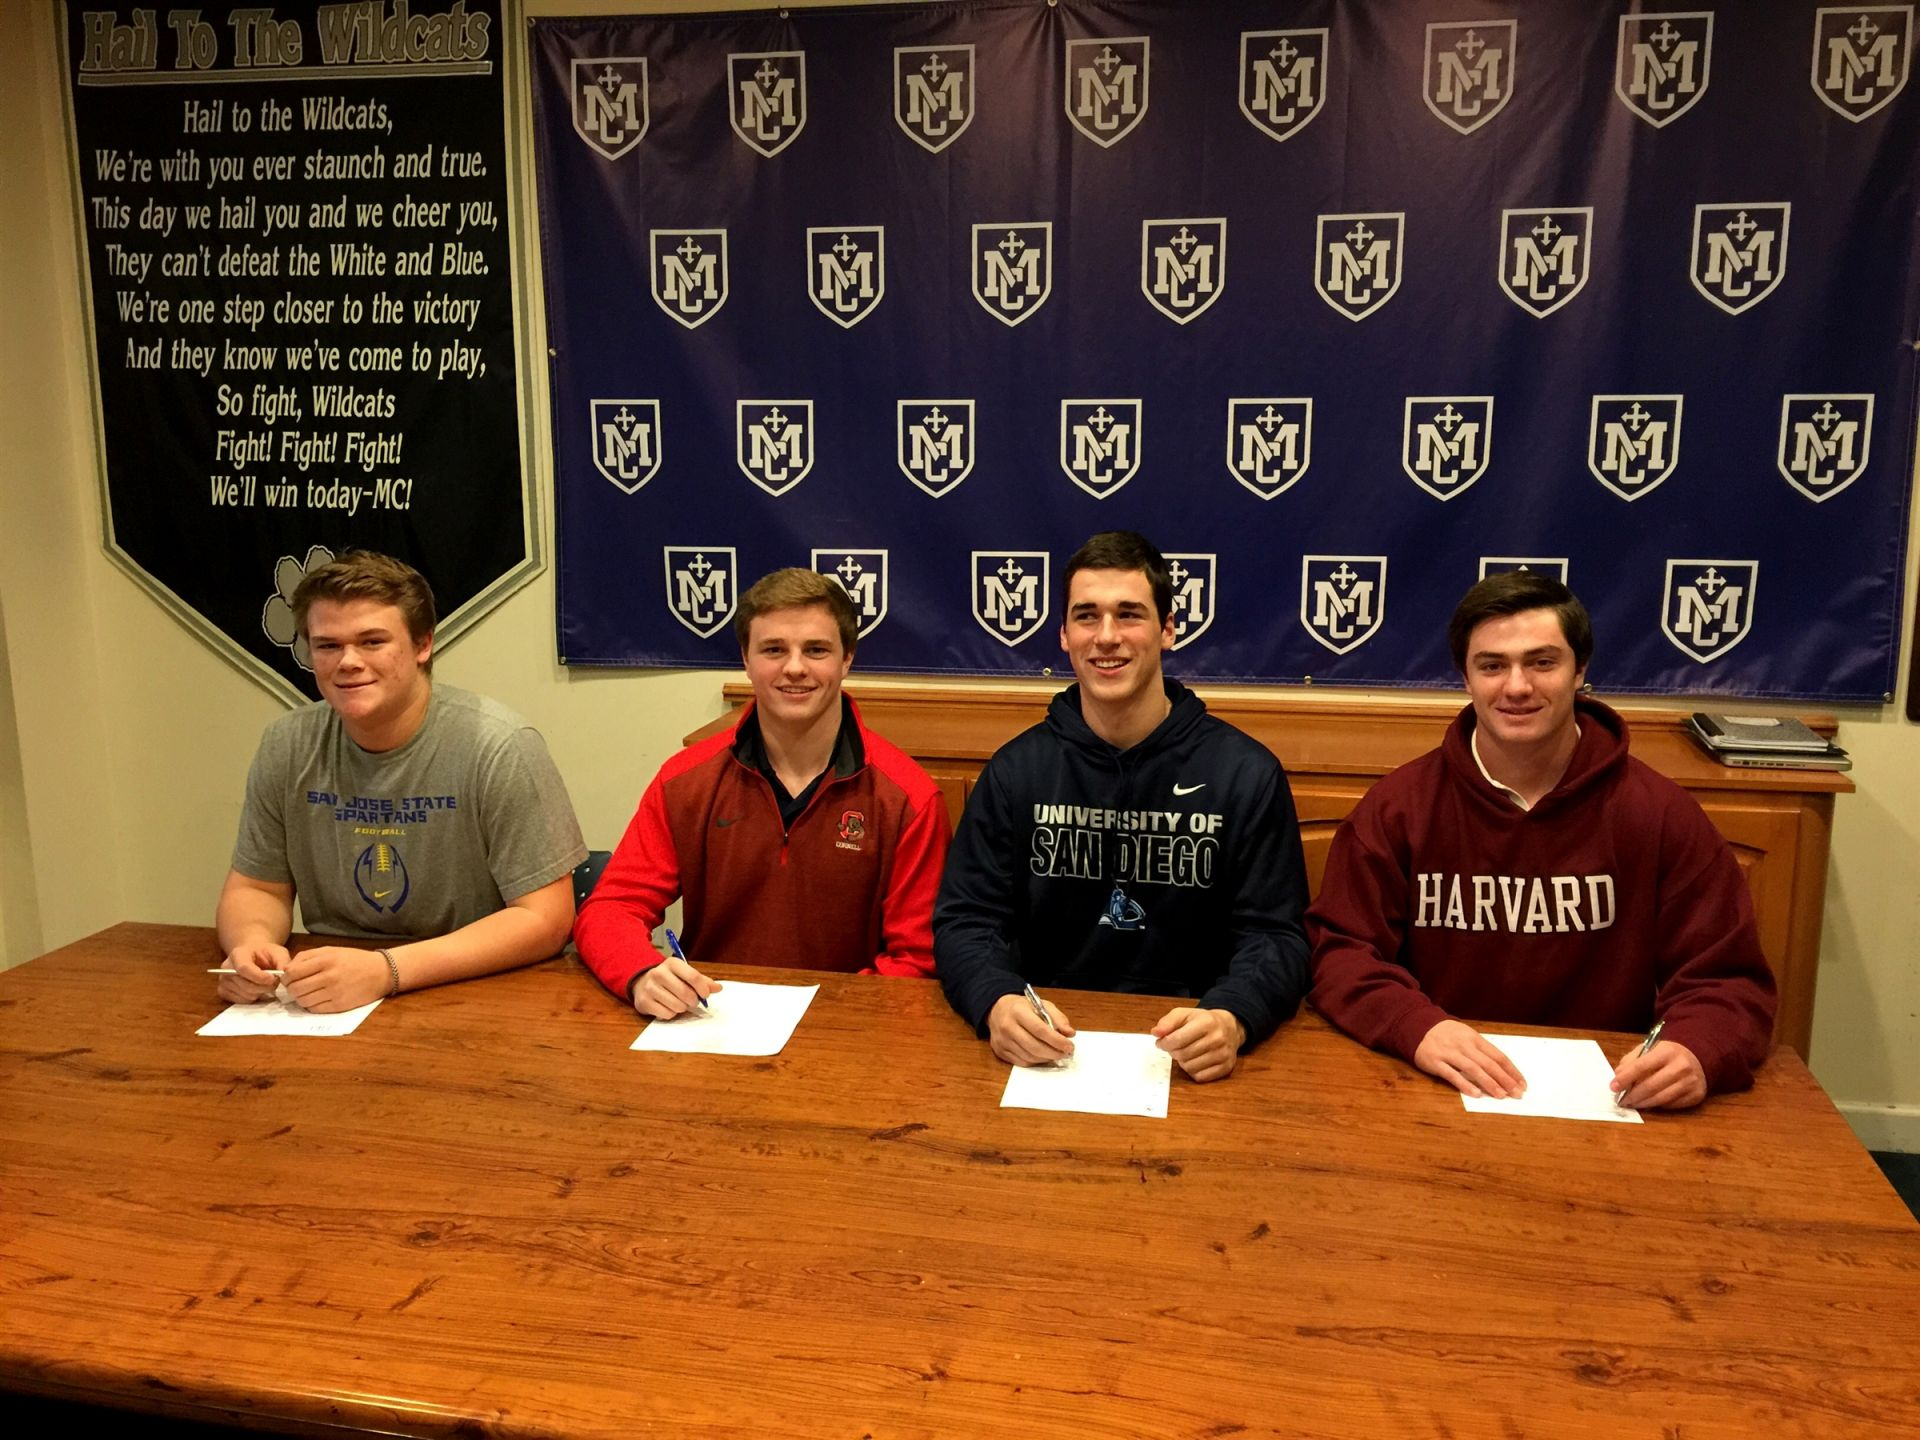 Jackson Snyder - San Jose State (Football), Ryan Kelley - Cornell (Football), Gino Ghilotti - San Diego (Football), Johnny MacLean - Harvard (Baseball)